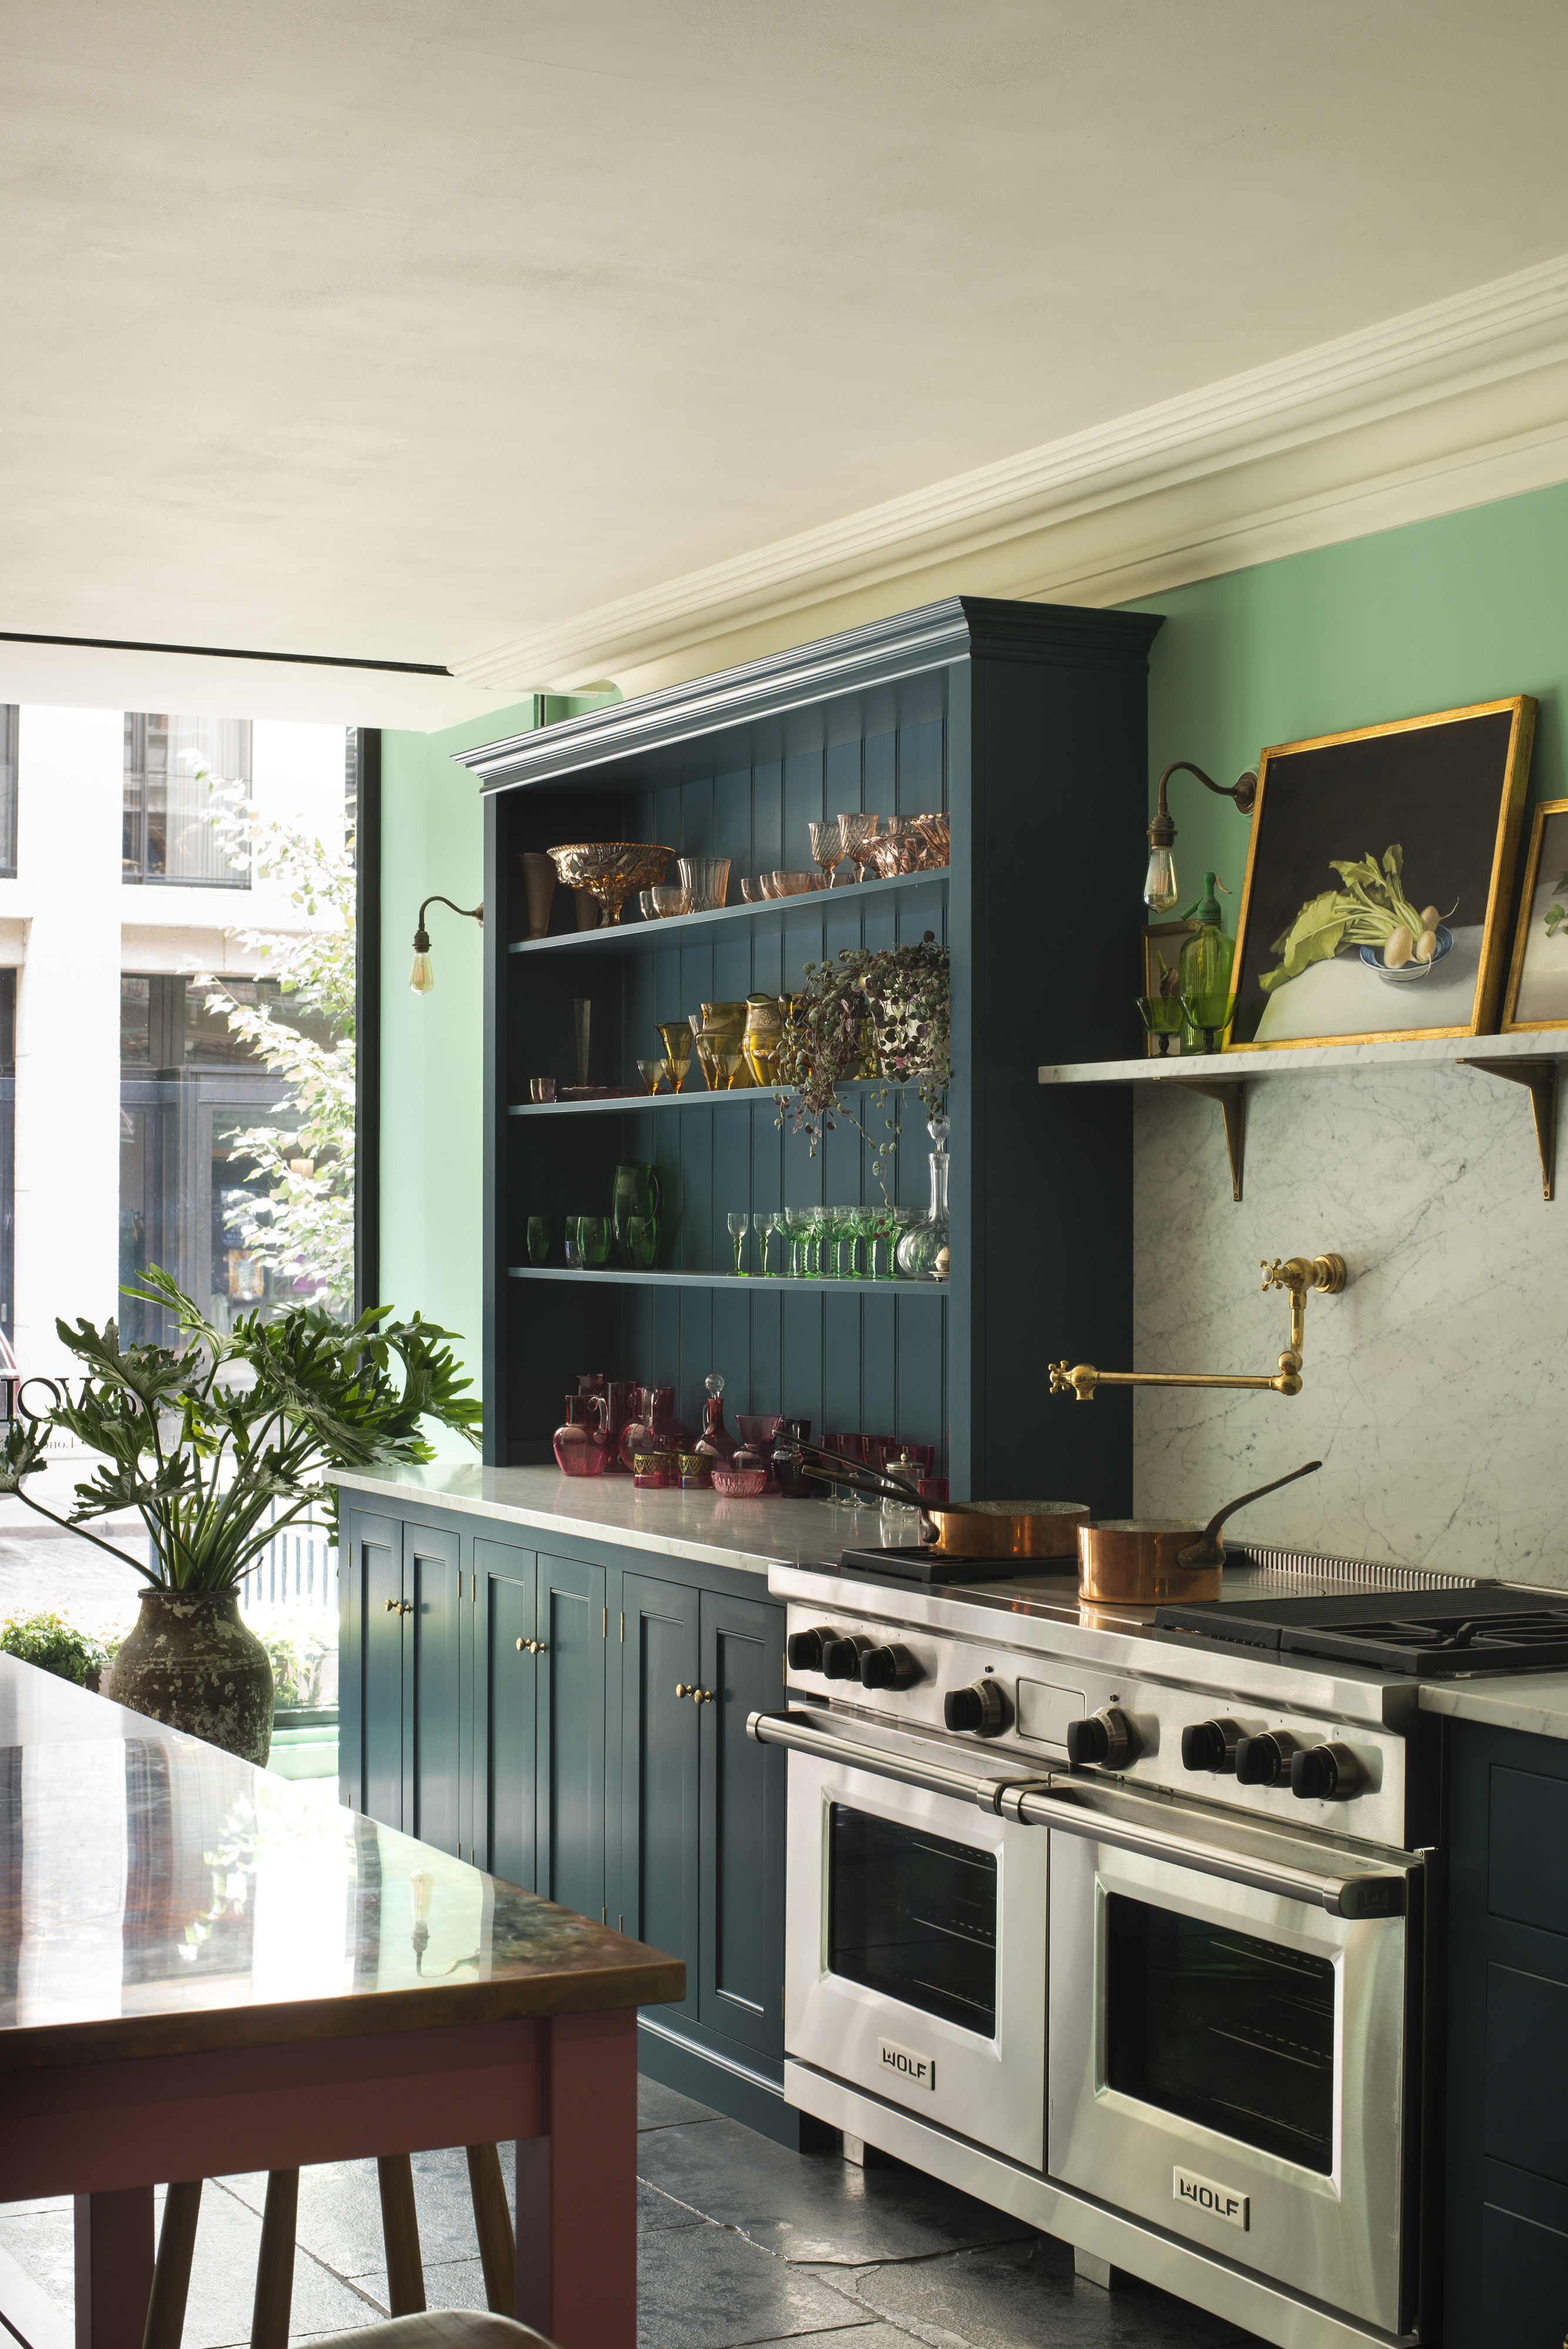 Our Bond Street Showroom In Noho Nyc The Classic English Kitchen The Devol Journal Devol Kitchens